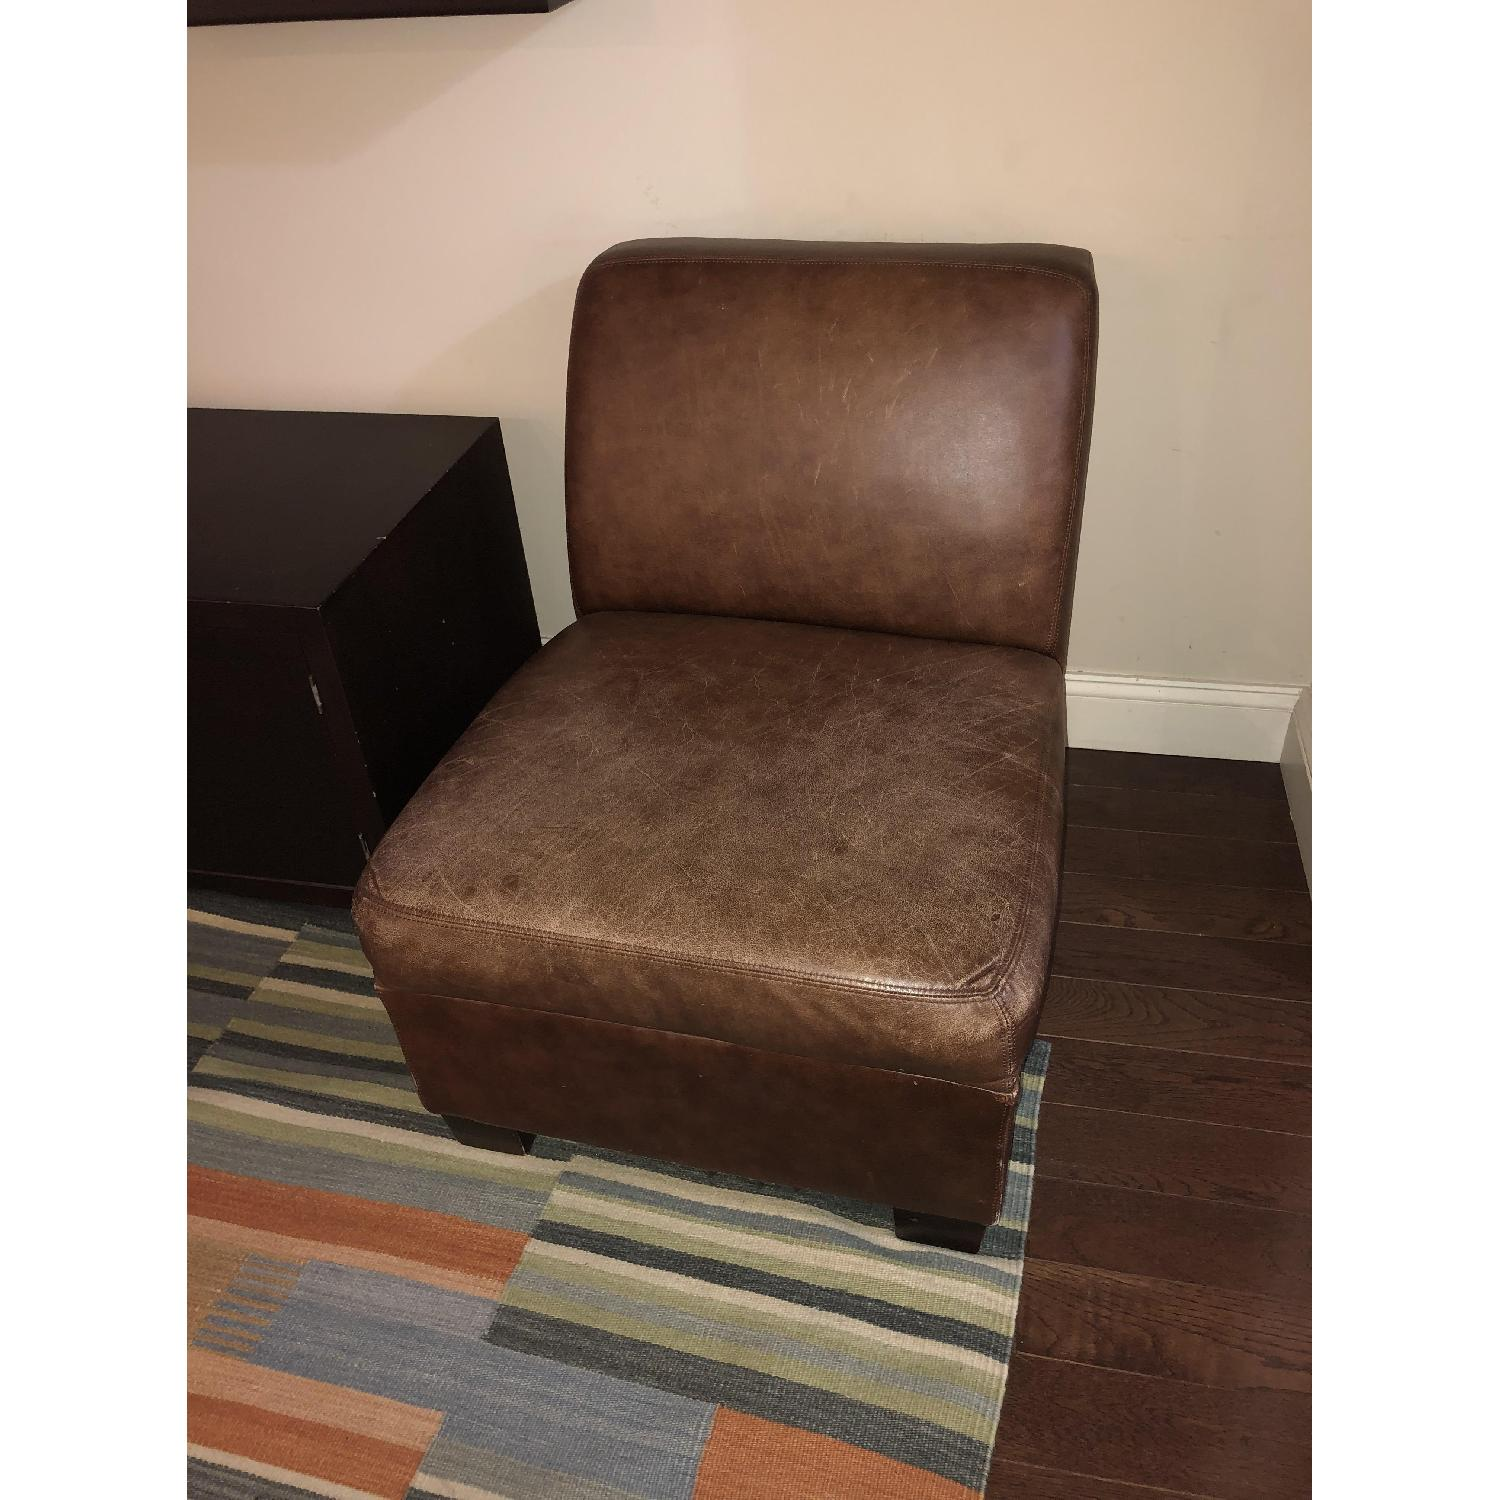 Pottery Barn Leather Club Chair-0